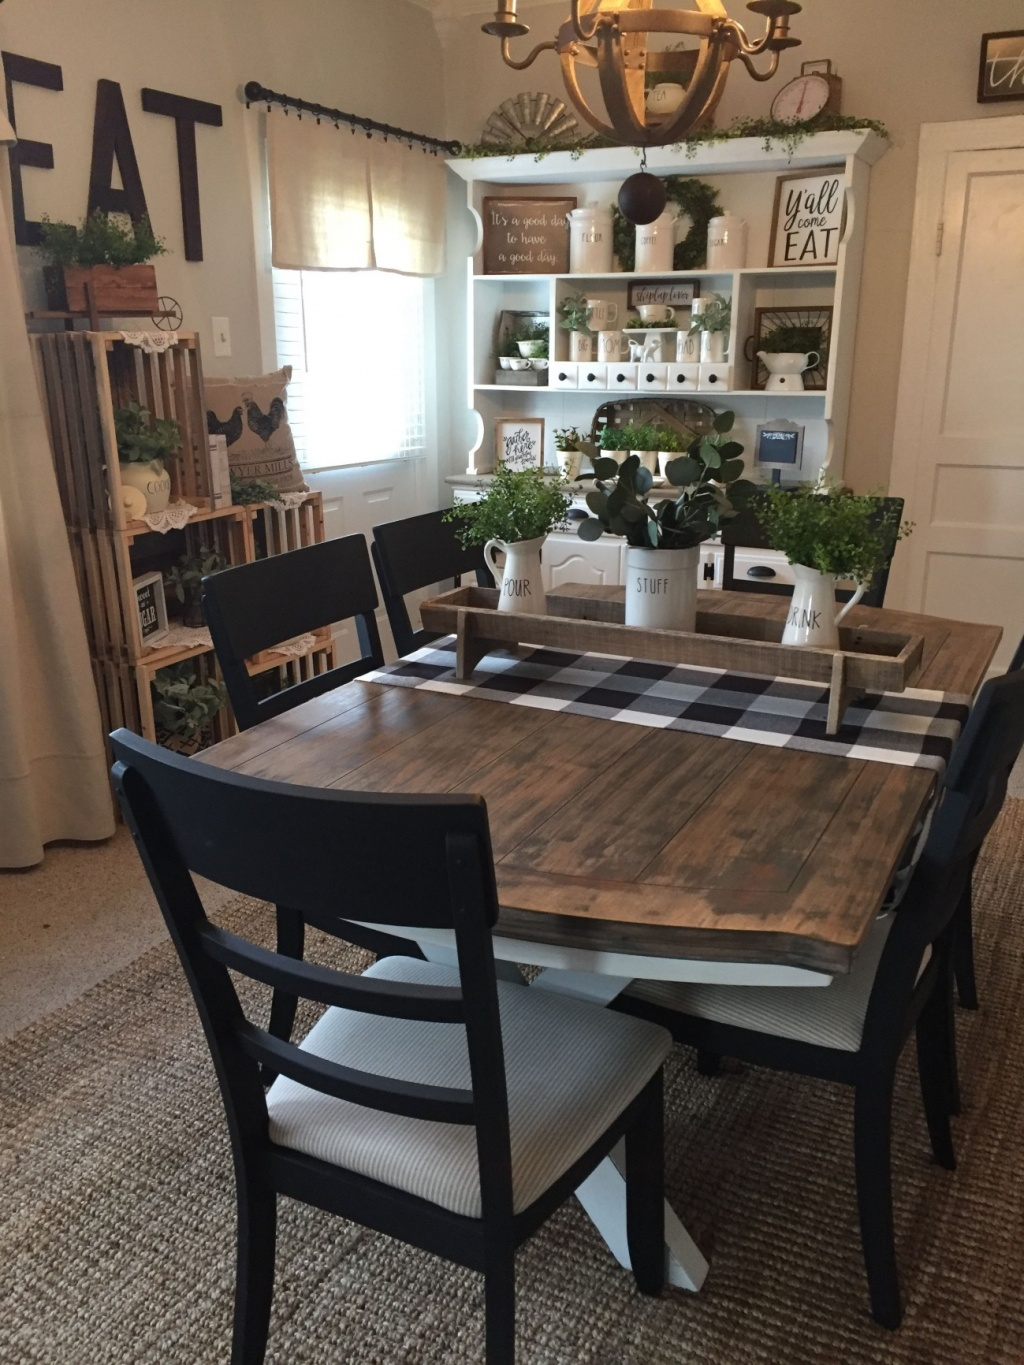 Kitchen table in the farmhouse